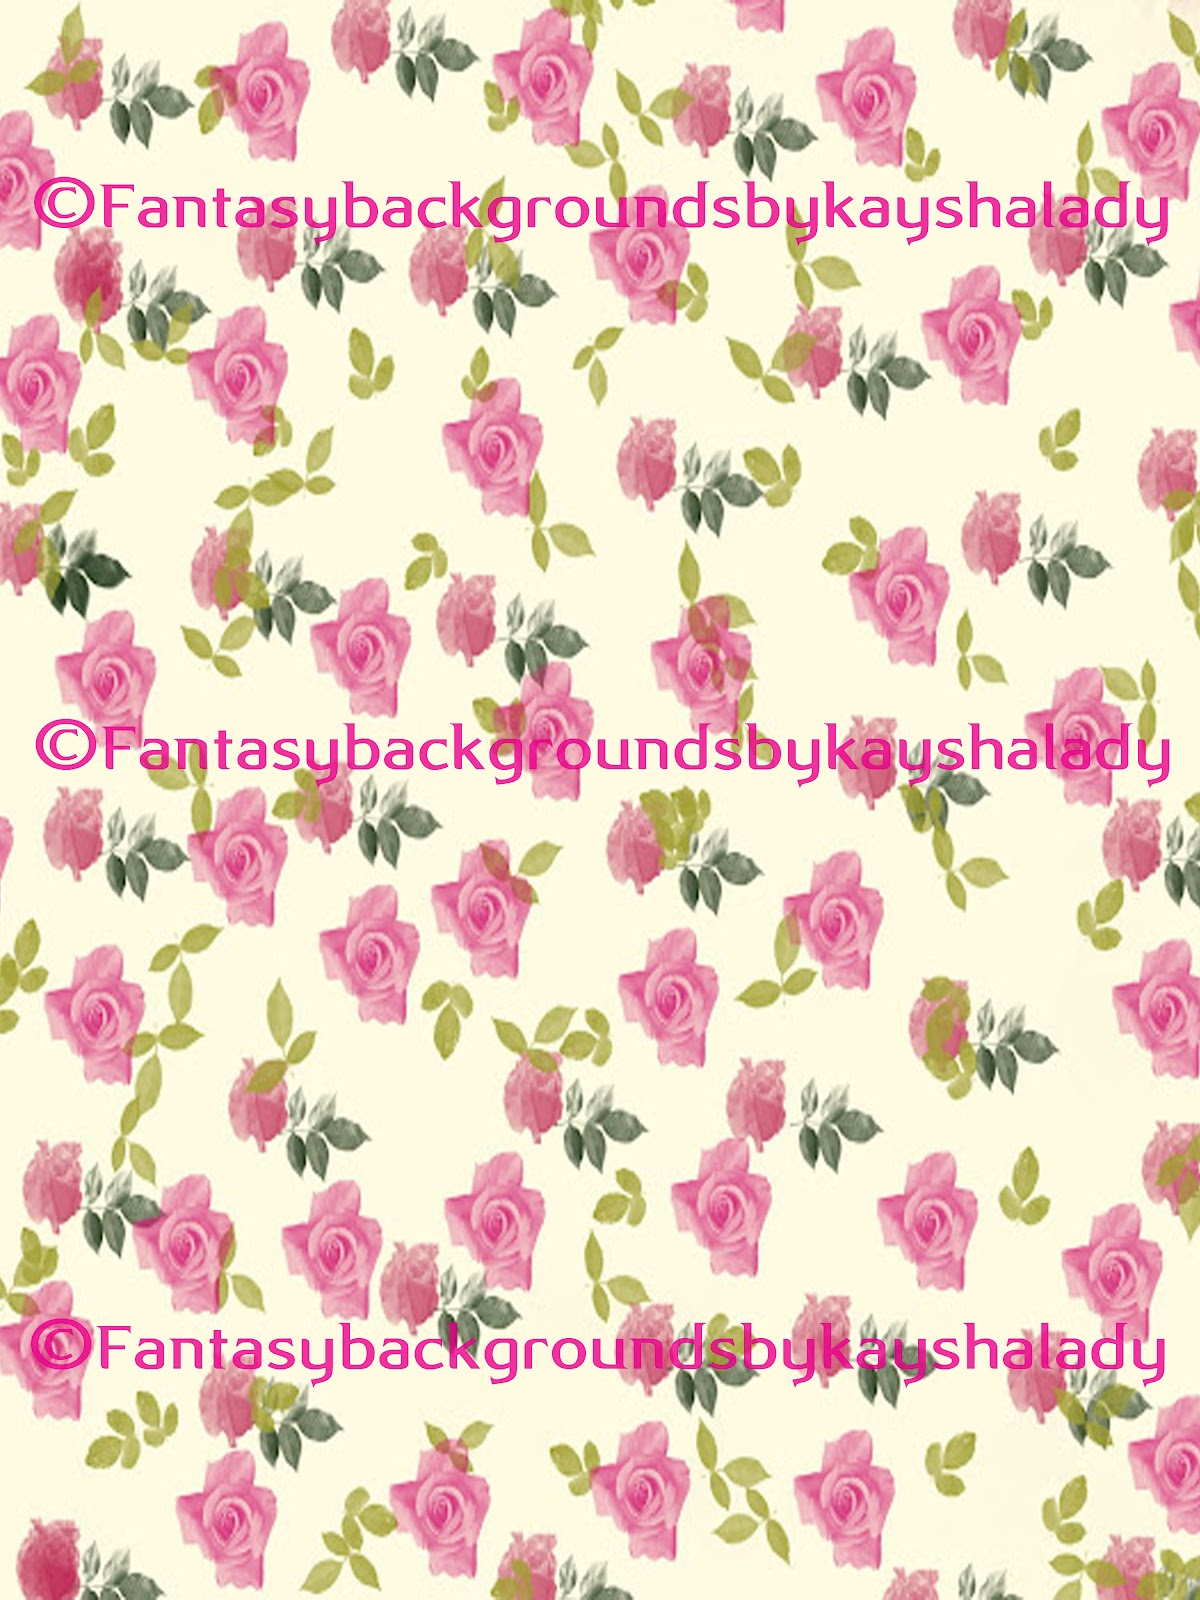 Fantasybackgroundsbykayshalady pretty flowered paper texture pack pretty flowered paper texture pack high resolution 3000x 4000 300 dpi beautiful paper textures mightylinksfo